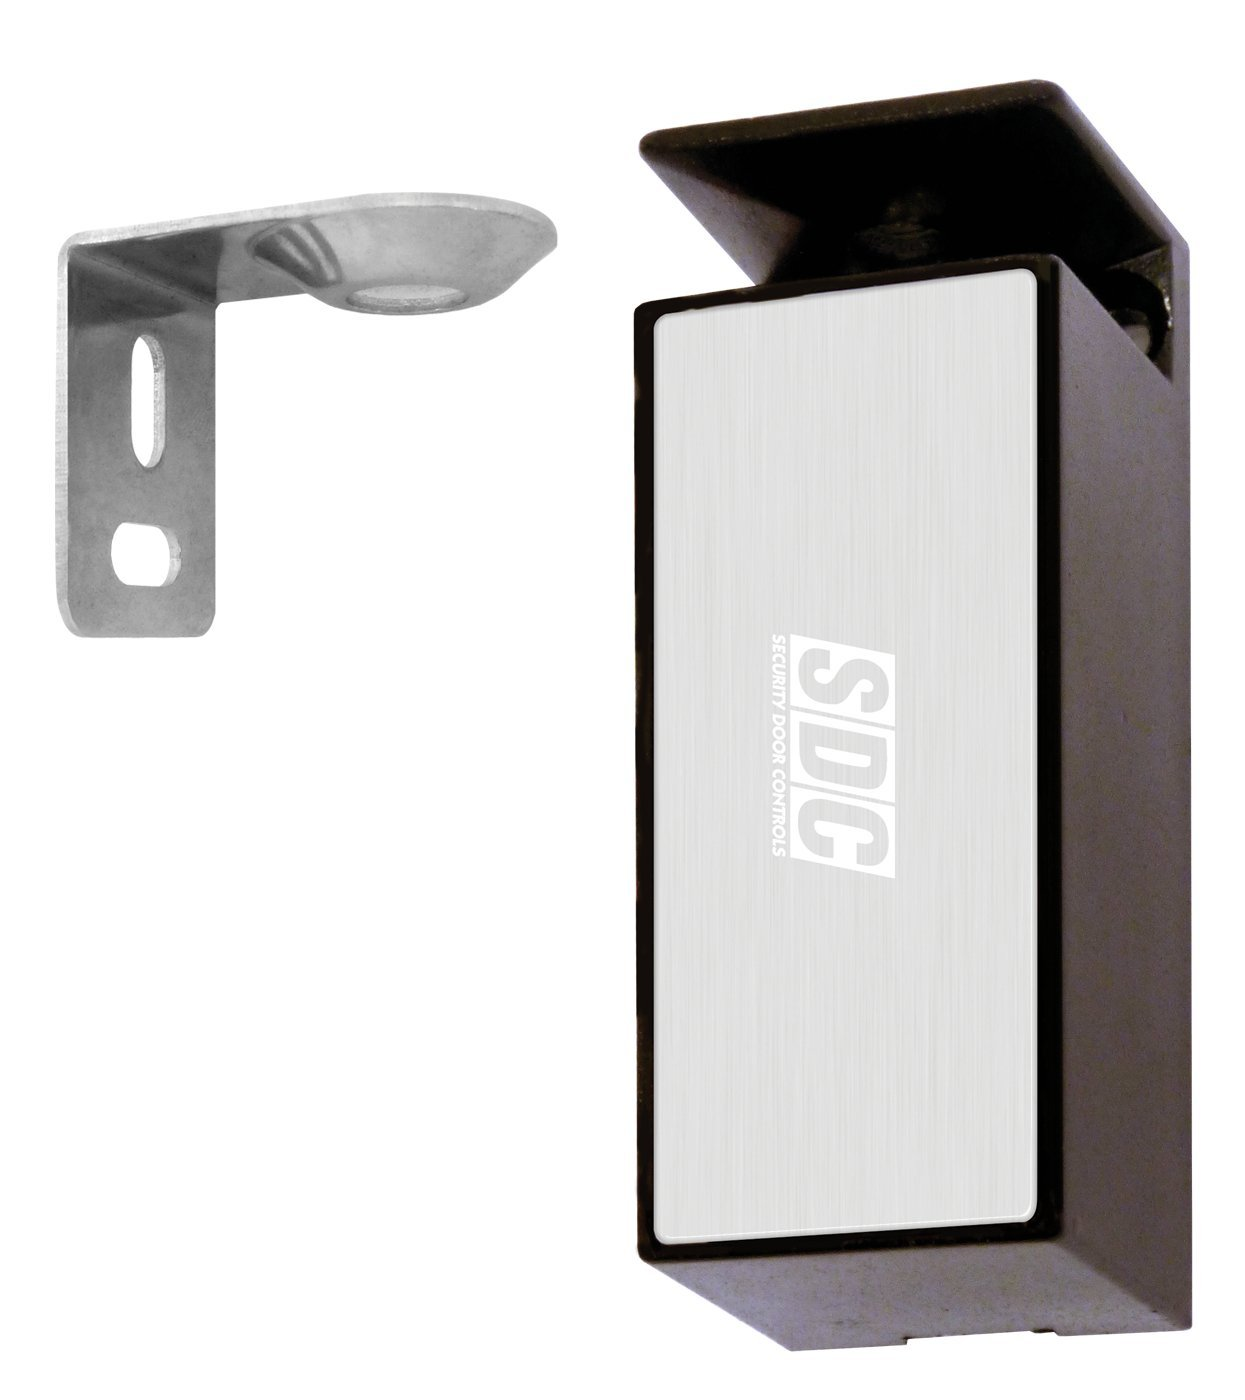 SDC 290LS Micro Cabinet Lock with Locked Status Switch-Drawers